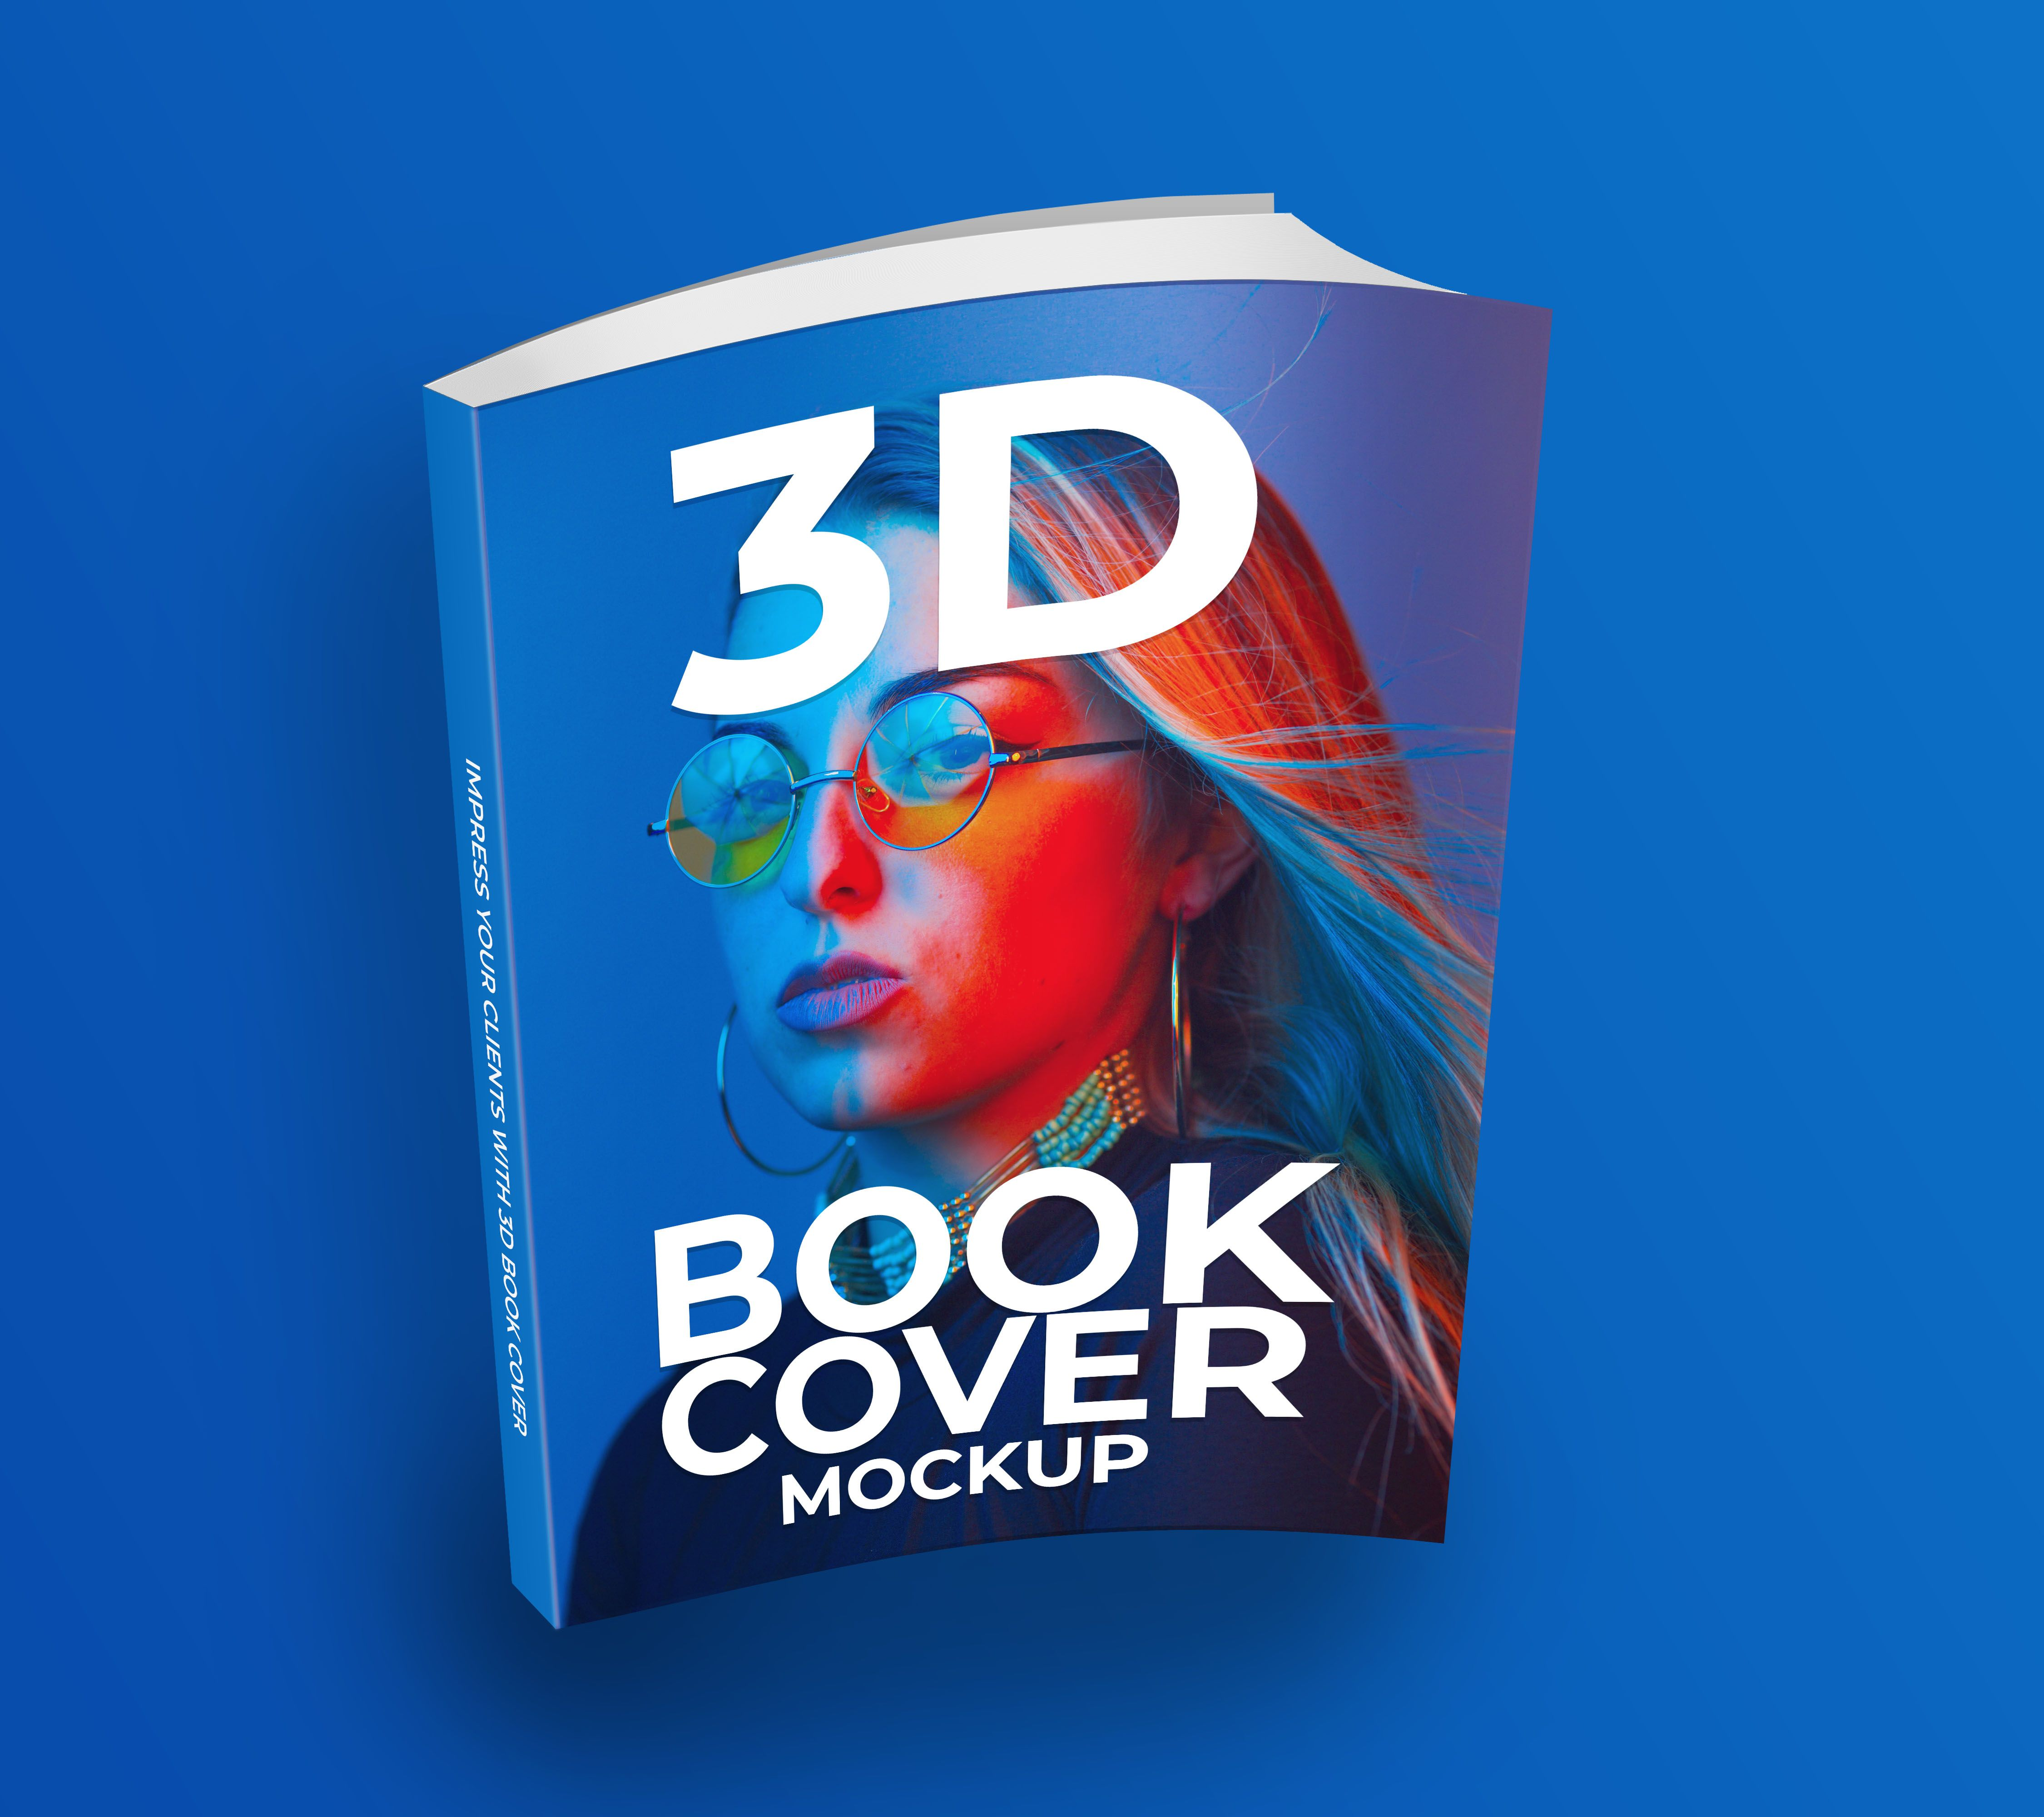 Download 3d Book Cover Mockup Free Psd Download Book Cover Mockup Book Cover Mockup Free Mockup Free Psd Download PSD Mockup Templates